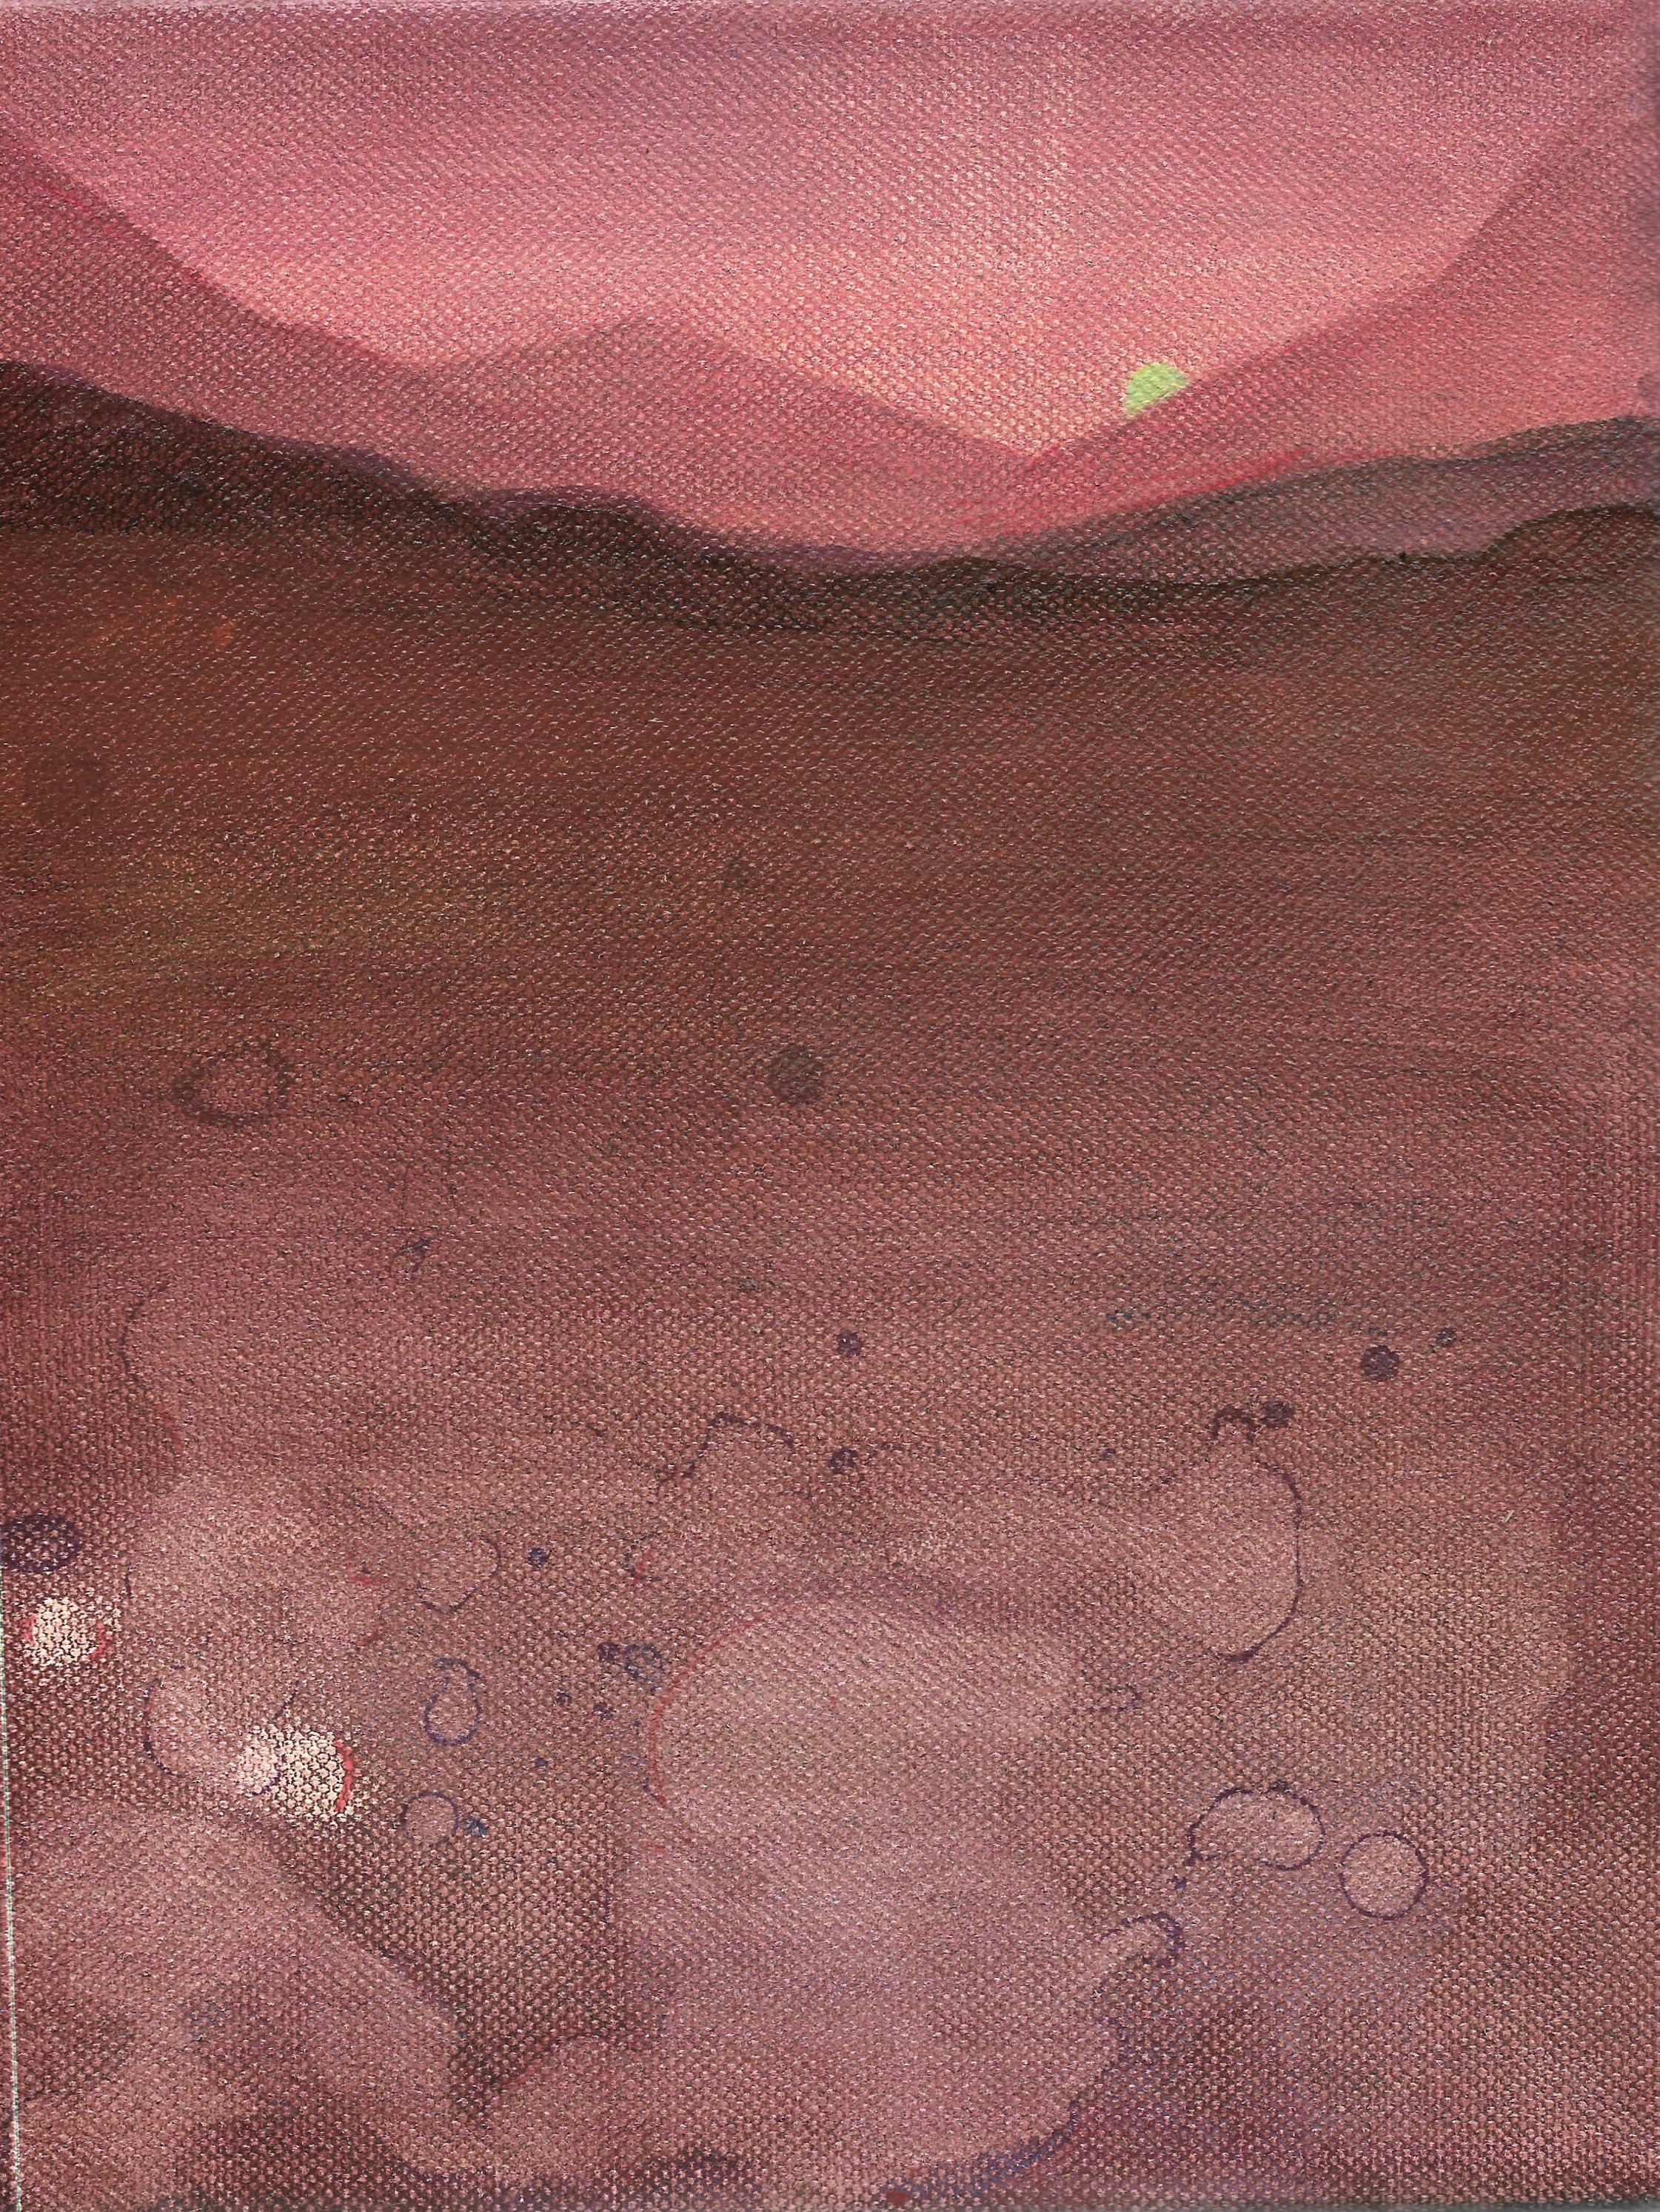 DESERT  **   paint on canvas.  2019 5 in x 8 in